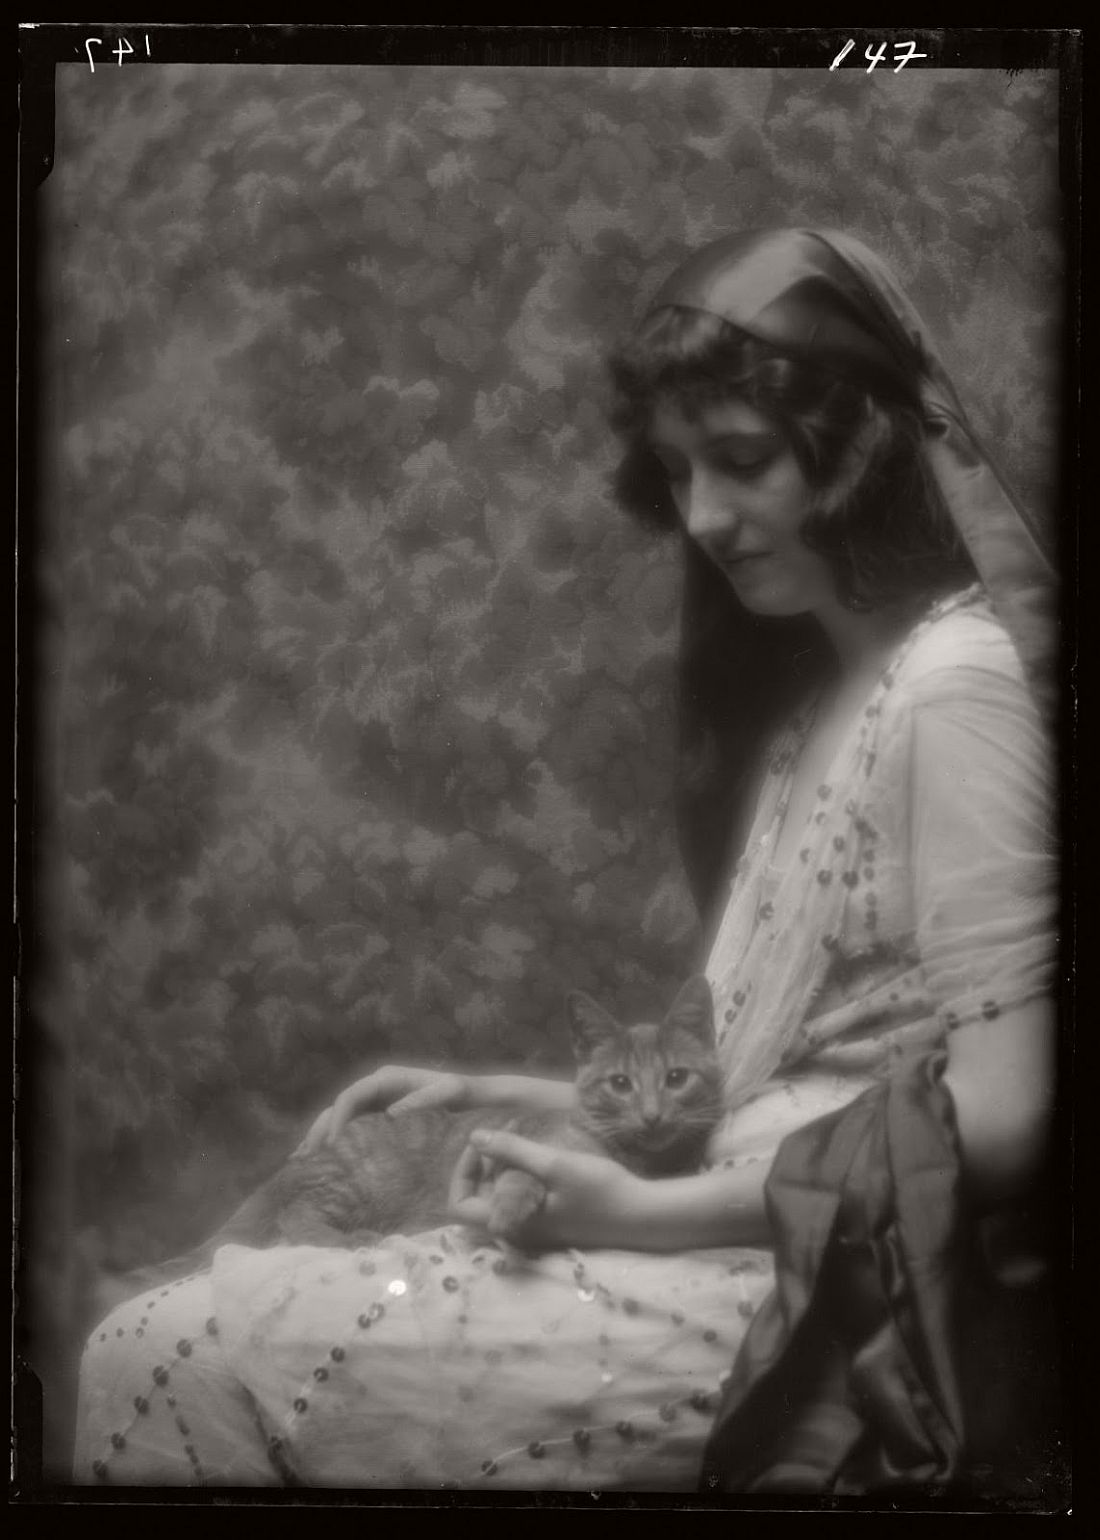 arnold-genthe-1910s-vintage-studio-portraits-of-girls-with-cat-08